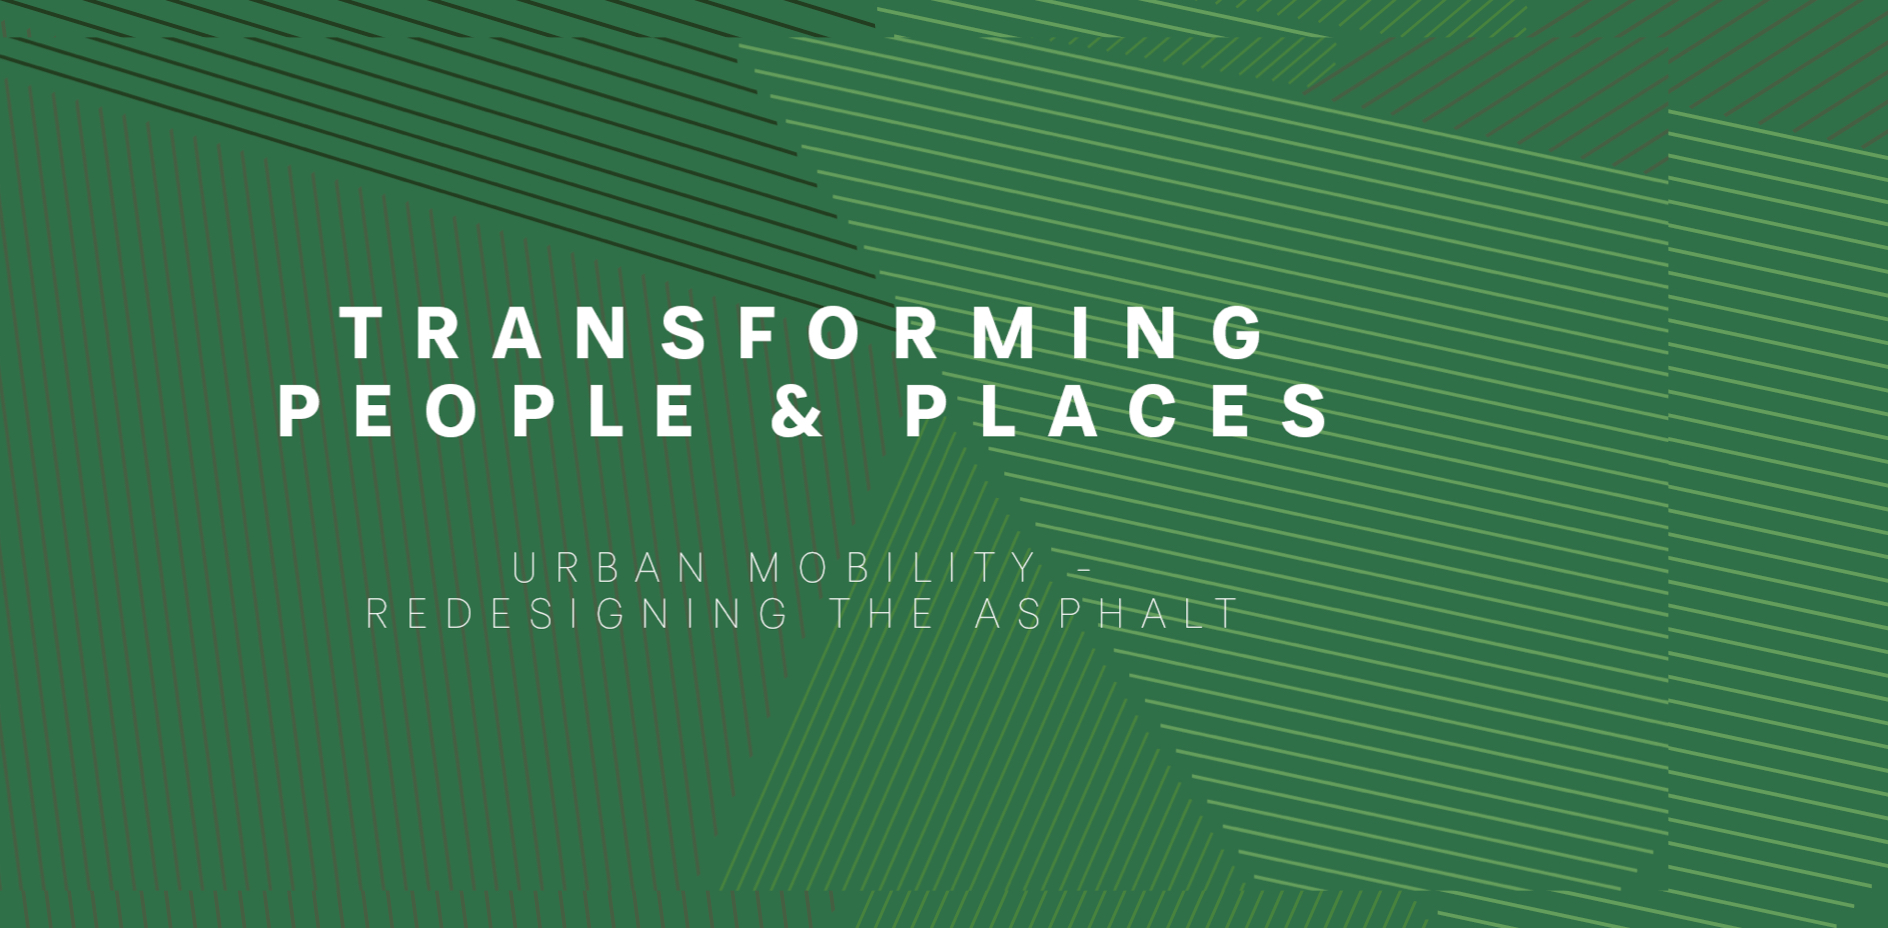 Transforming People & Places